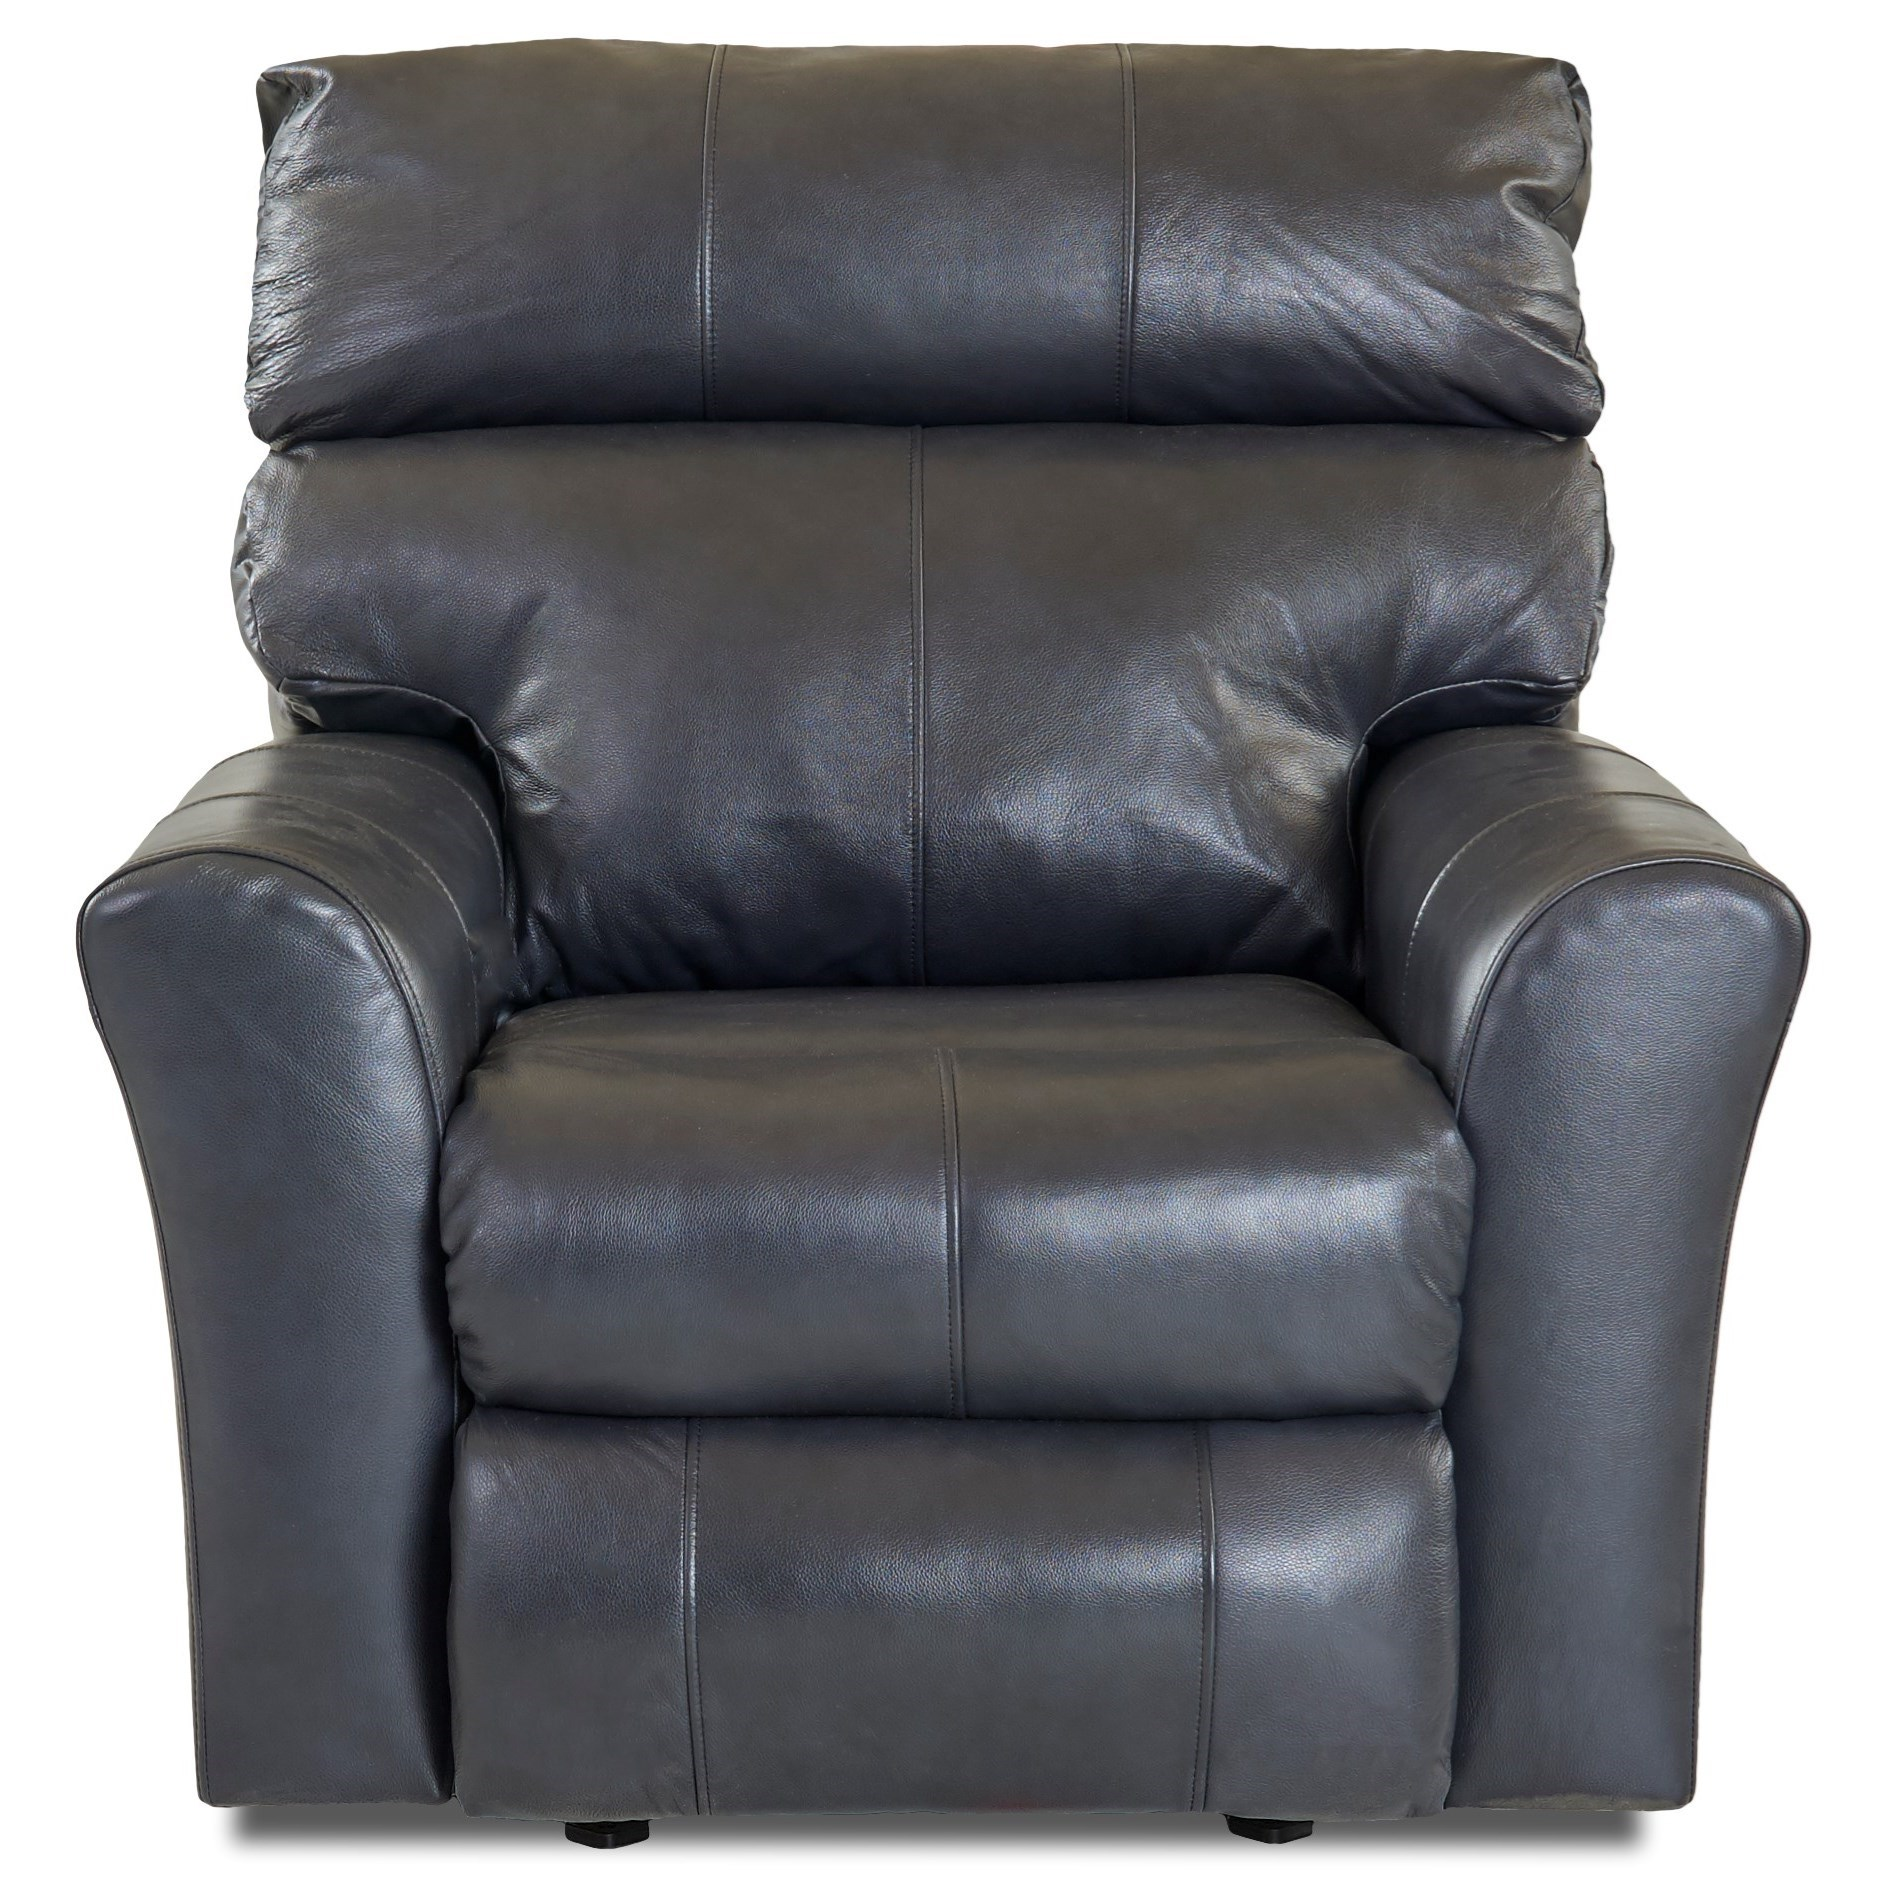 Casual Reclining Chair